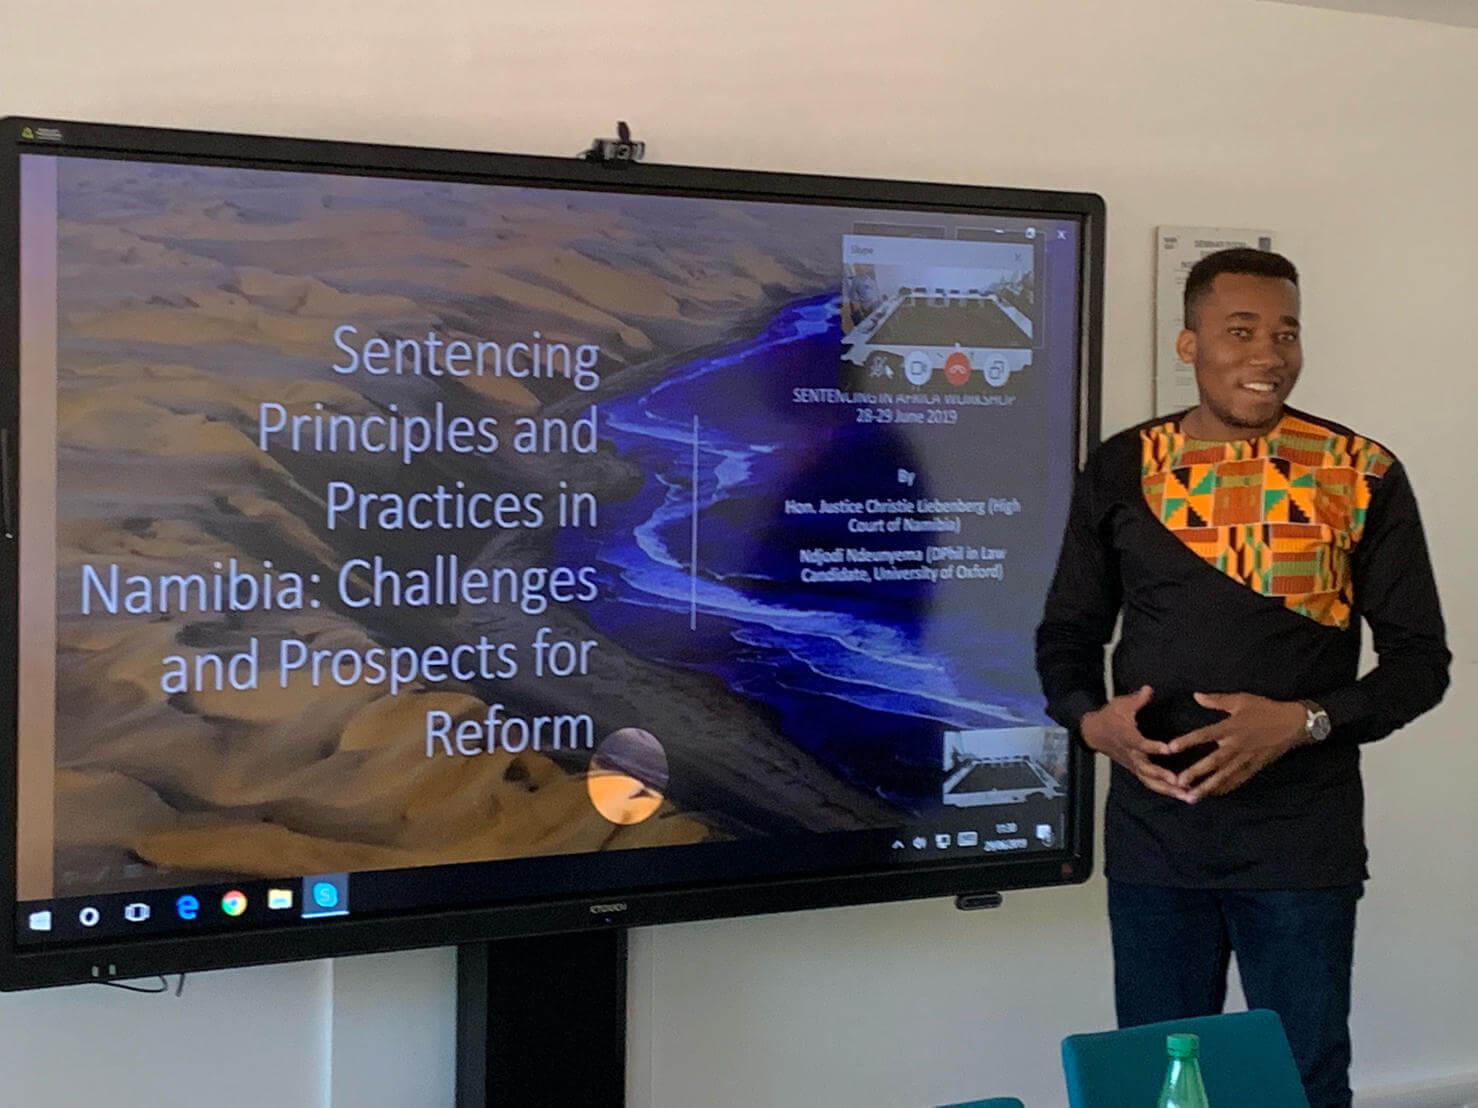 Seminal Expert Workshop on Sentencing in East and Southern Africa